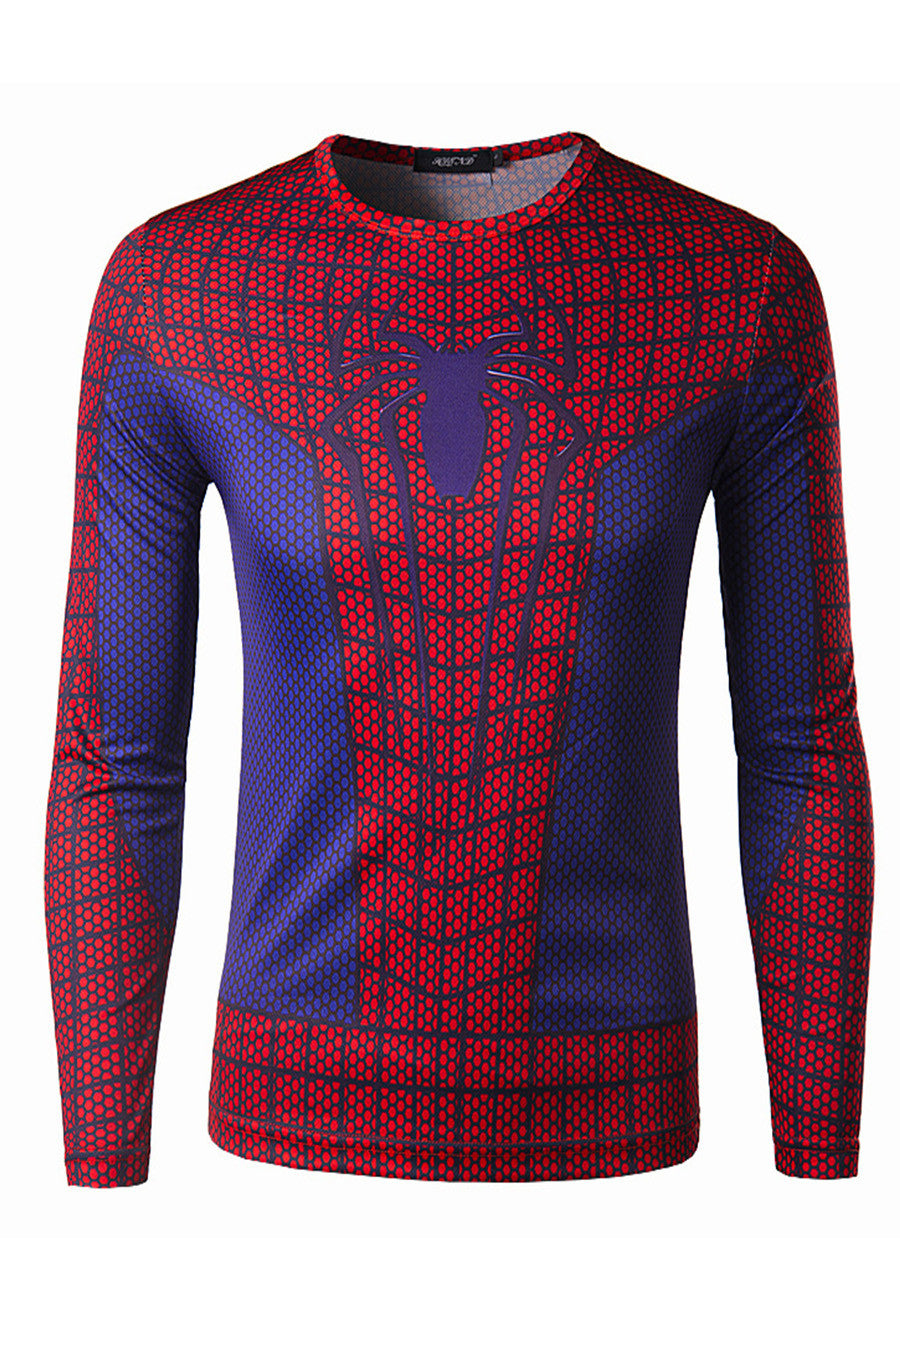 Spider-Man Red Printed T-shirt